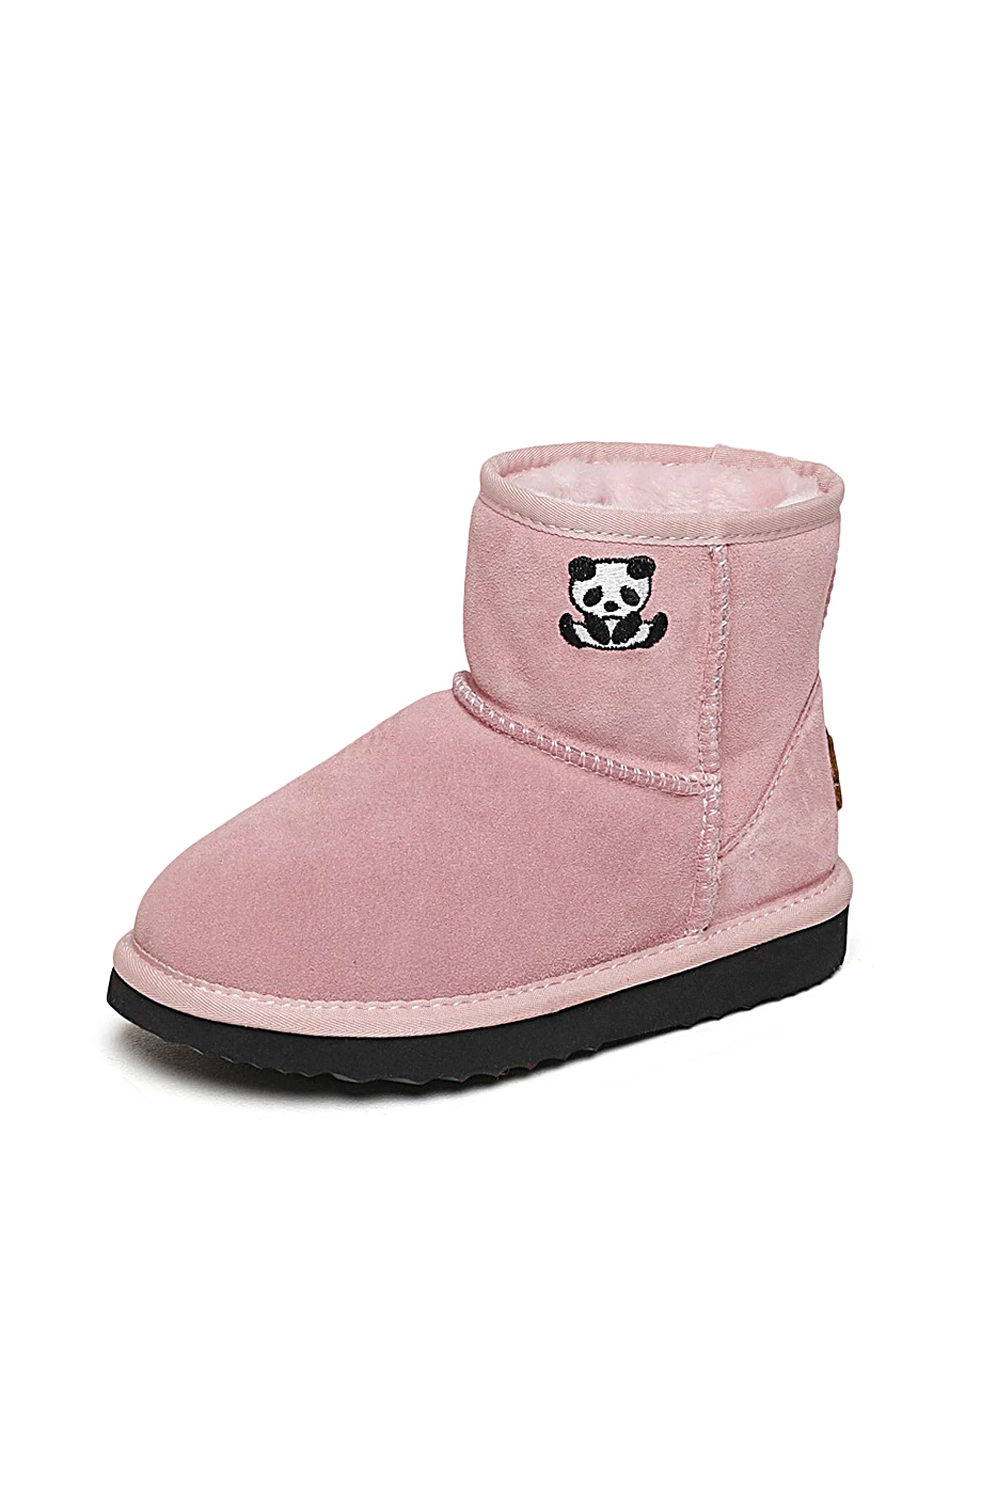 Kids Pink Panda Winter Boots